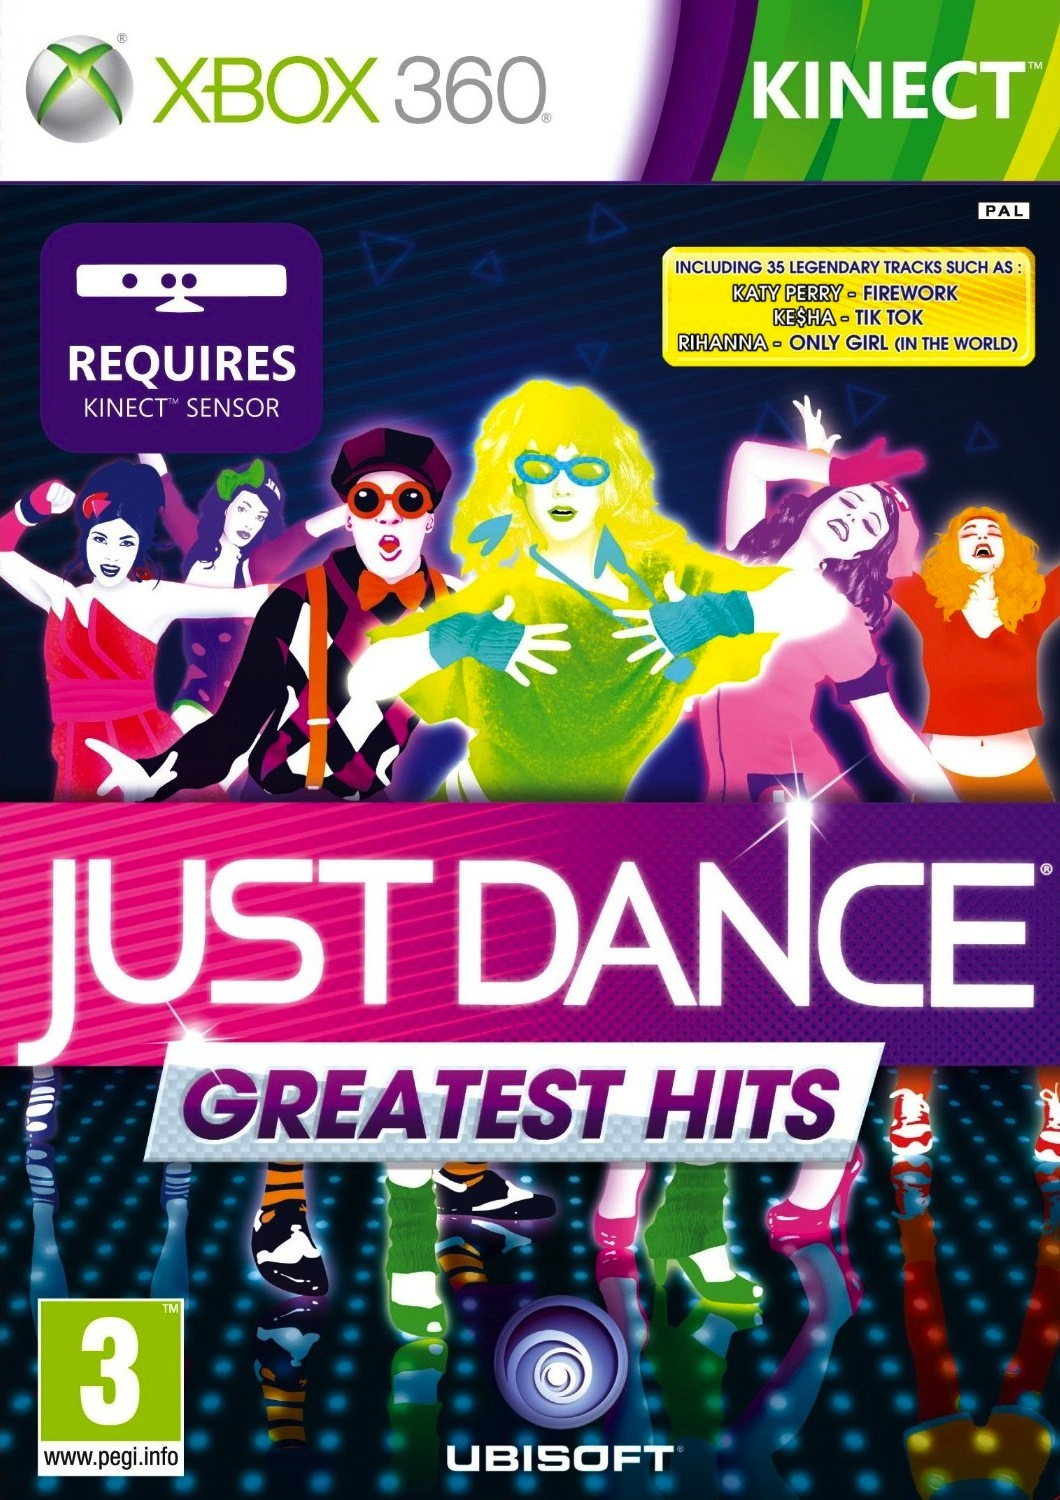 just dance greatest hits sur xbox 360. Black Bedroom Furniture Sets. Home Design Ideas